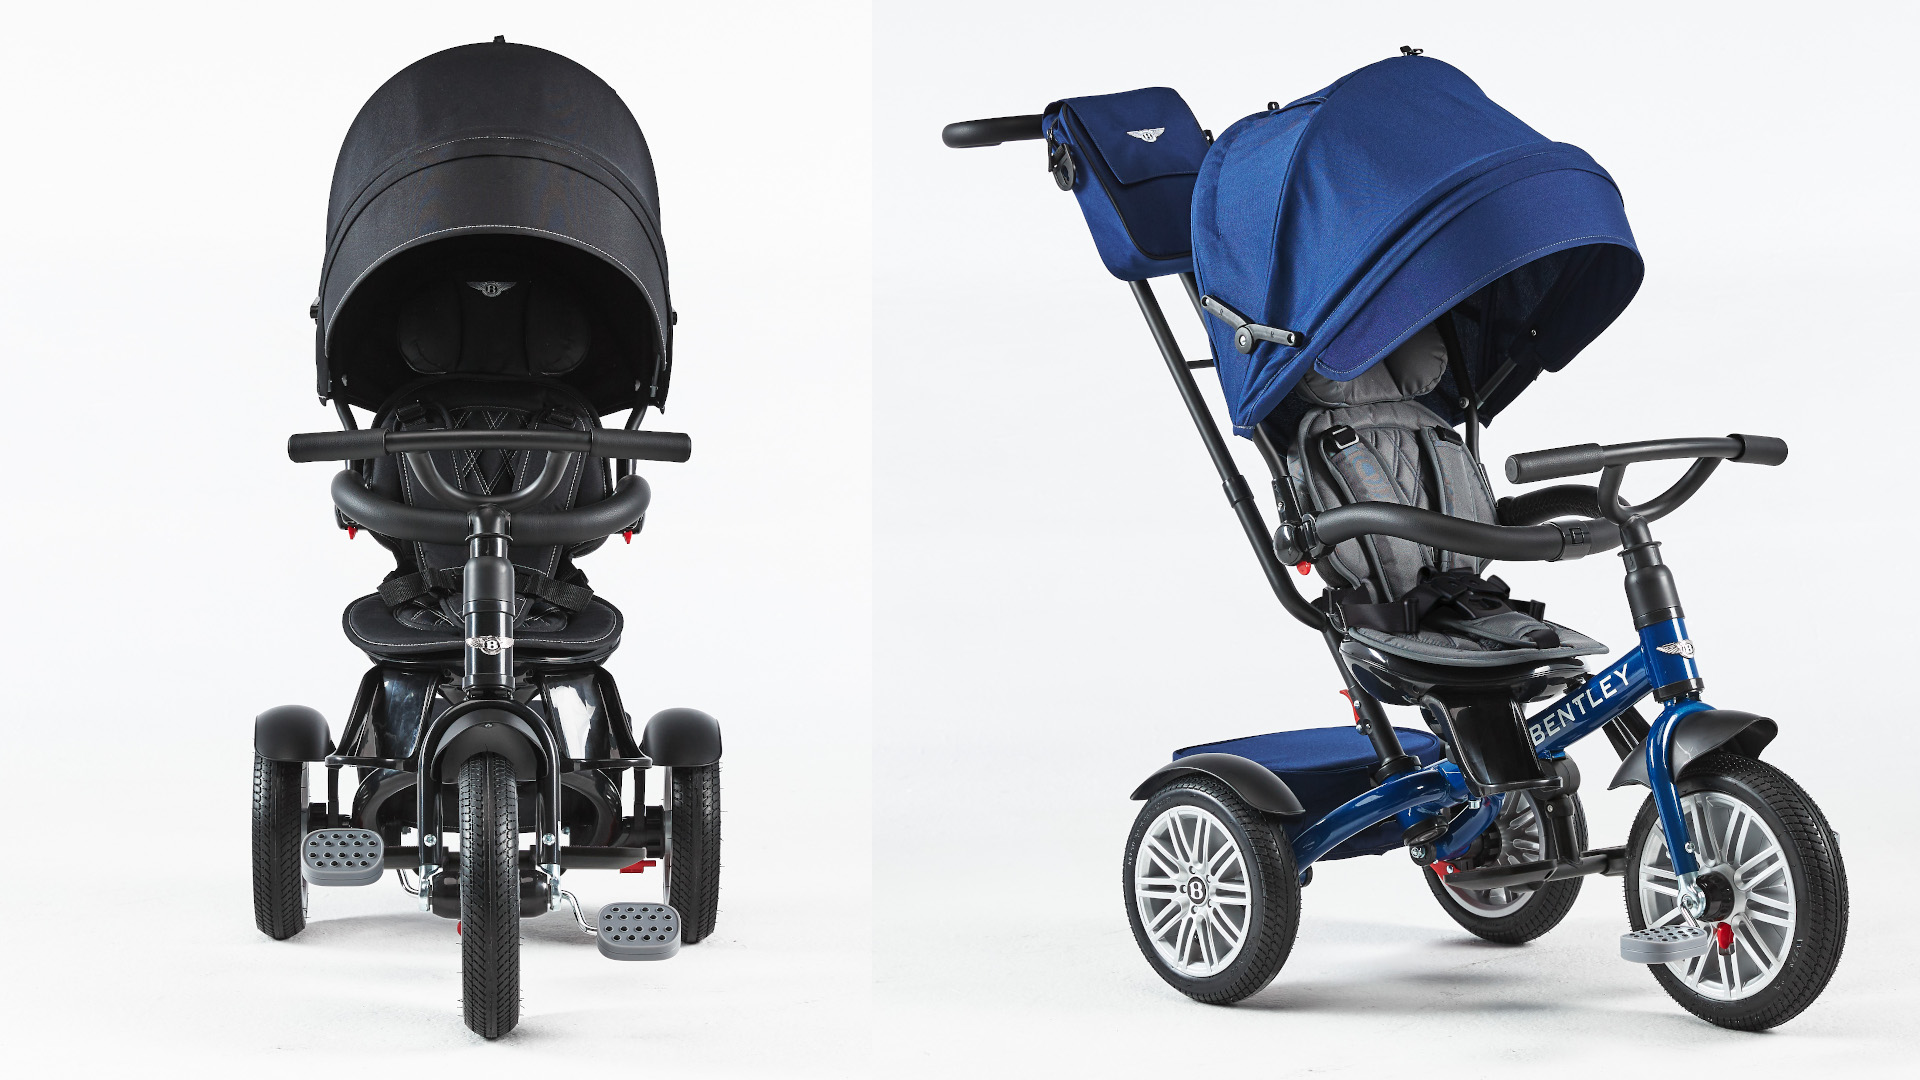 The Bentley Trike in Black and Blue